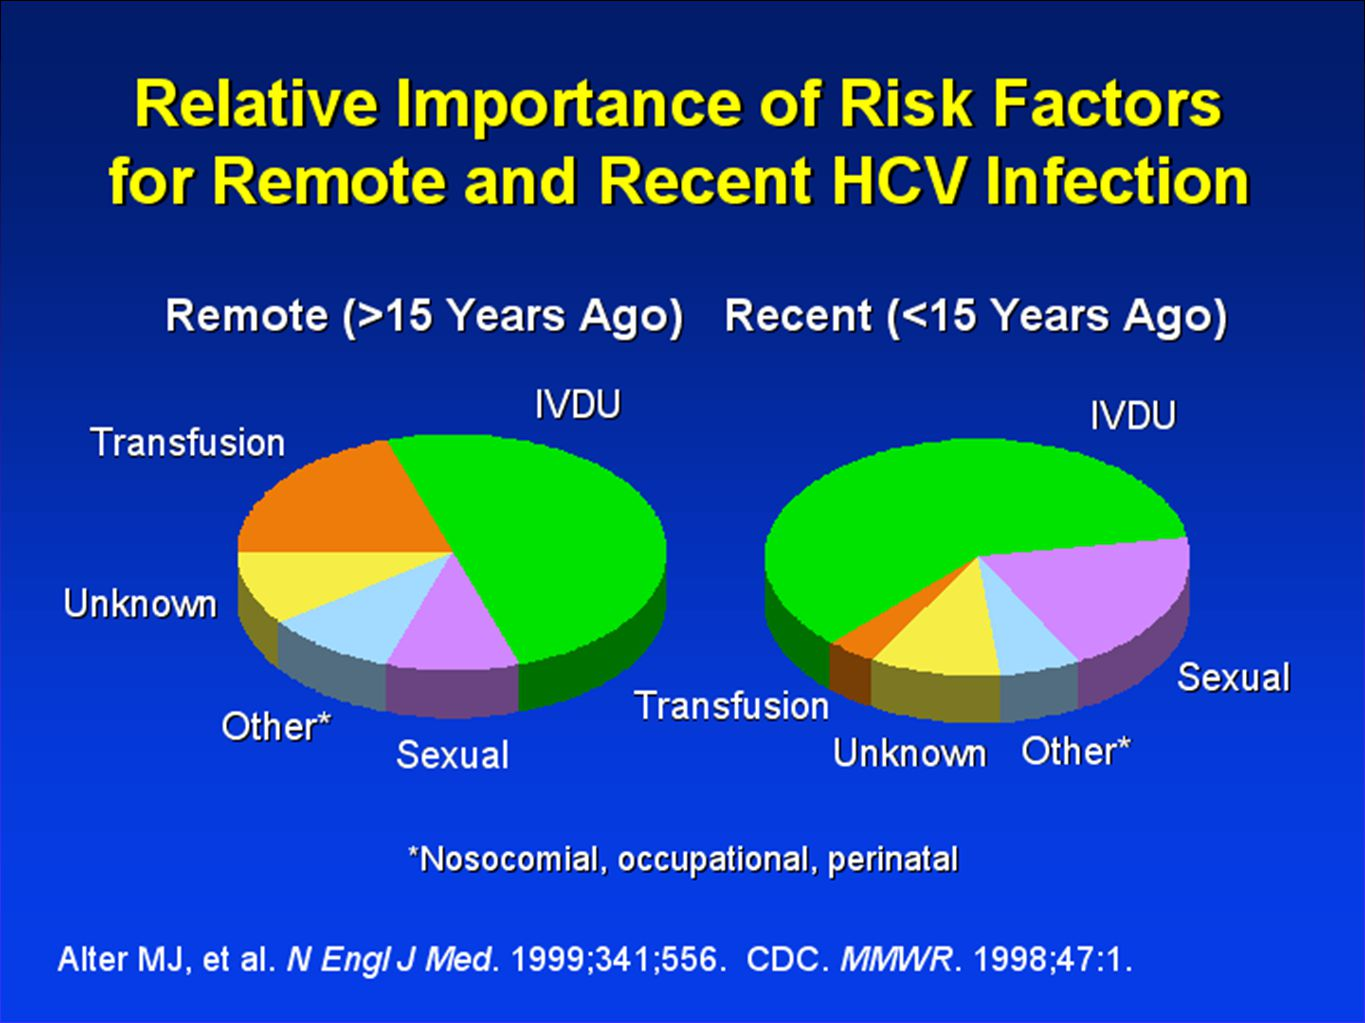 APRICOT Summary PEG-IFN + RBV was the most effective regimen for clearance of HCV PEG-IFN + RBV was the most effective regimen for clearance of HCV Relapse rate was lower than 5071: Relapse rate was lower than 5071:  Genotype 1: ETR 38% and SVR 29%  Genotype 2/3: ETR 64% and SVR 62% APRICOT had more Caucasian patients than 5071 – in HCV alone, African-Americans have a lower response rate APRICOT had more Caucasian patients than 5071 – in HCV alone, African-Americans have a lower response rate Torriani, NEJM 2004